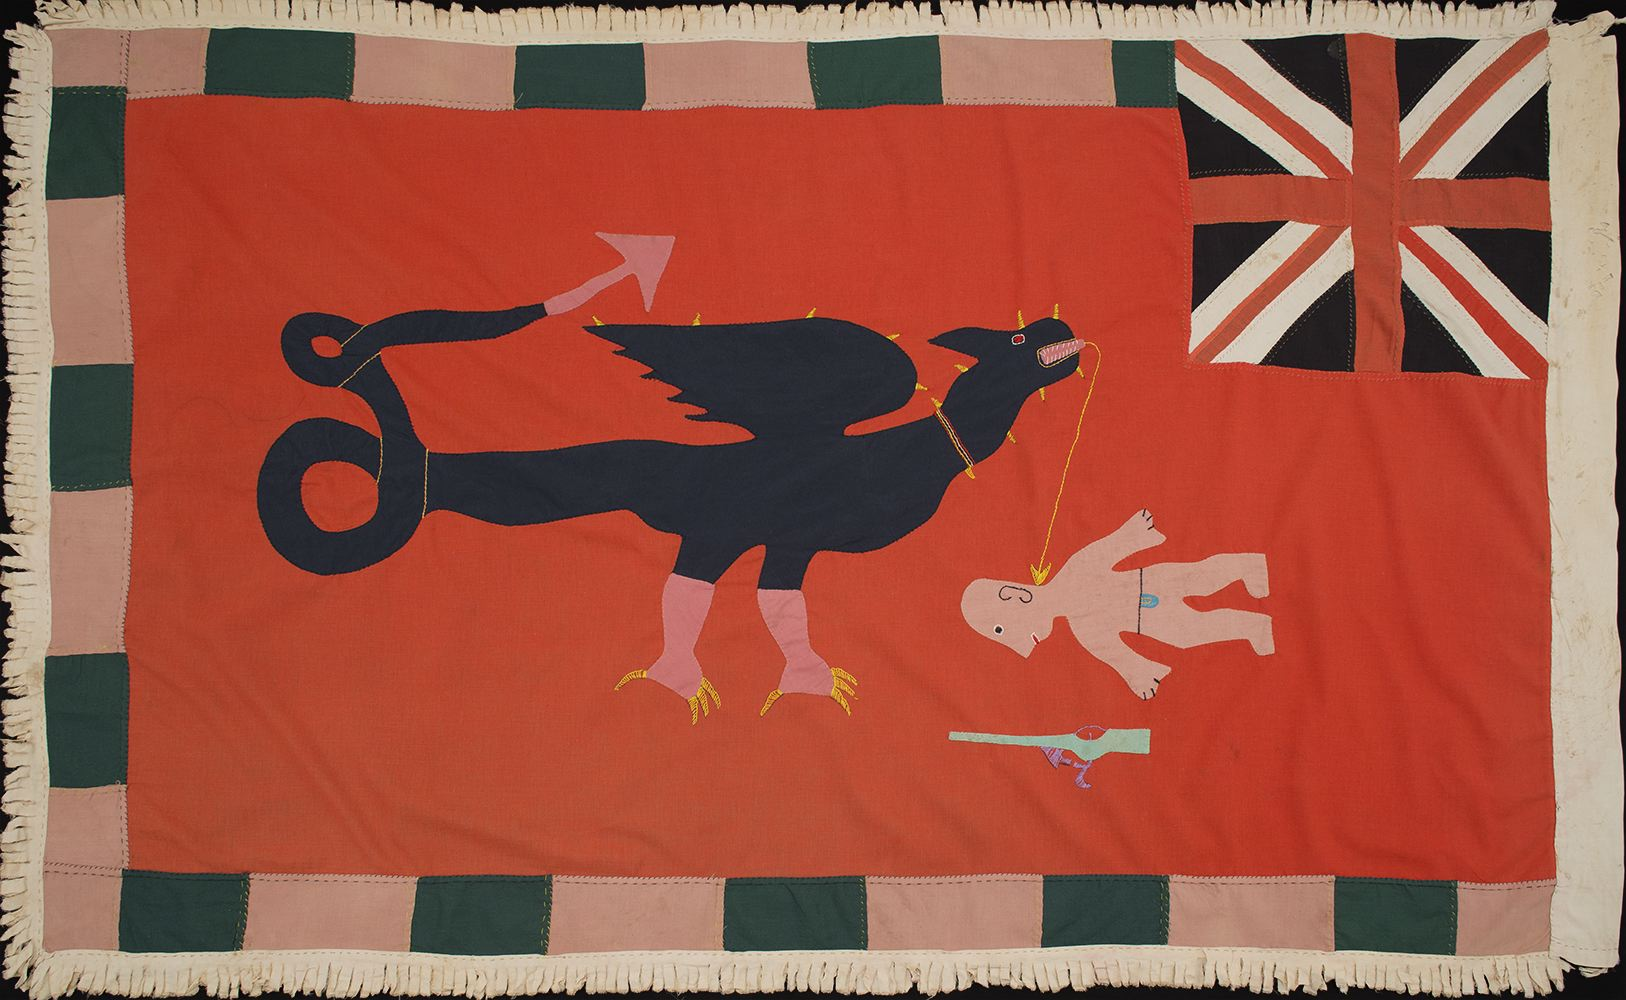 Africa    Asafo Flag - Fante People - Ghana  , Pre 1957 Cotton fabric with felt 37 x 58 inches 94 x 147.3 cm AF 370